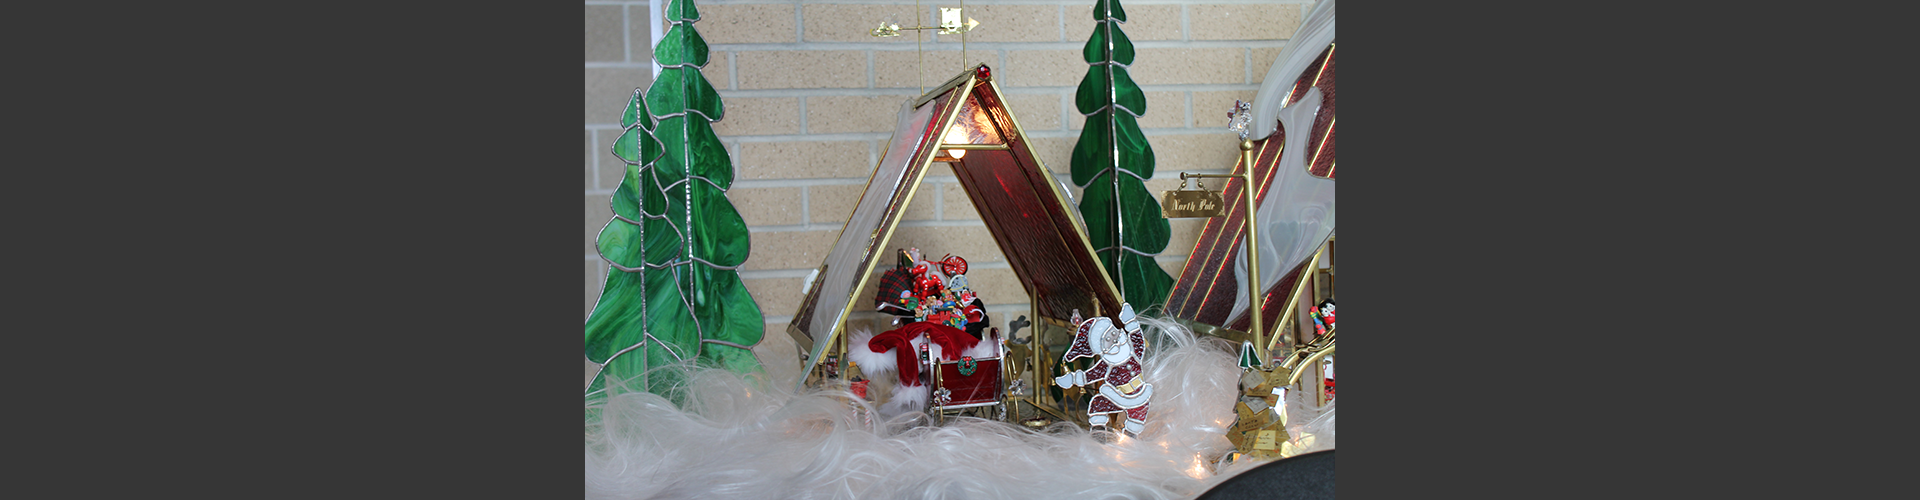 image of a glass nativity display of Santa's Workshop at the Festival of Trees